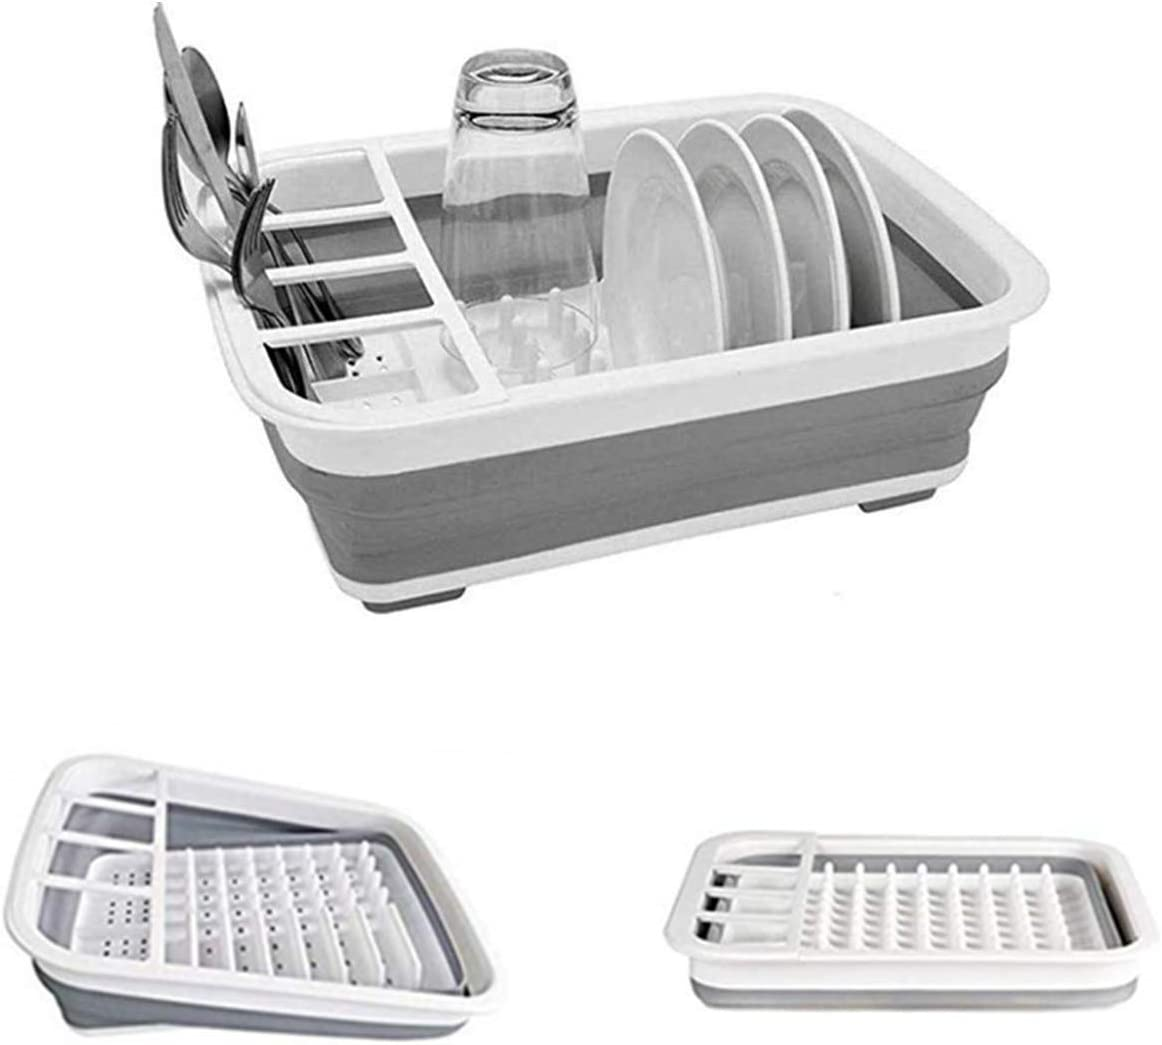 Collapsible Dish Drying Rack Portable Dish Drainer Dinnerware Organizer for Kitchen Counter RV Storage Campers